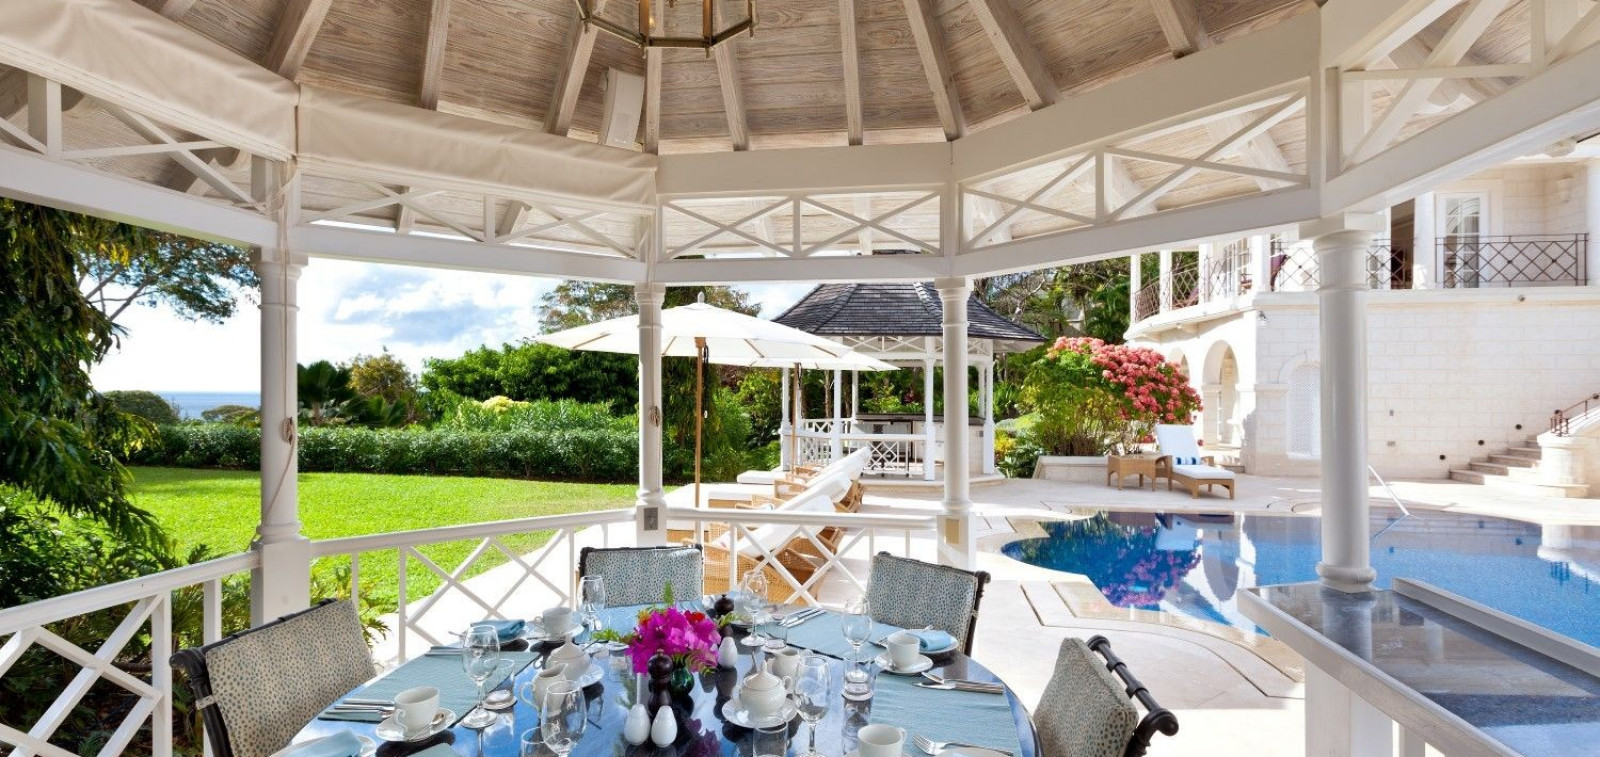 Outdoor Dining Space 5 Bedroom Villa Sugar Hill, Barbados with Private Pool, Putting Green & Sea Views